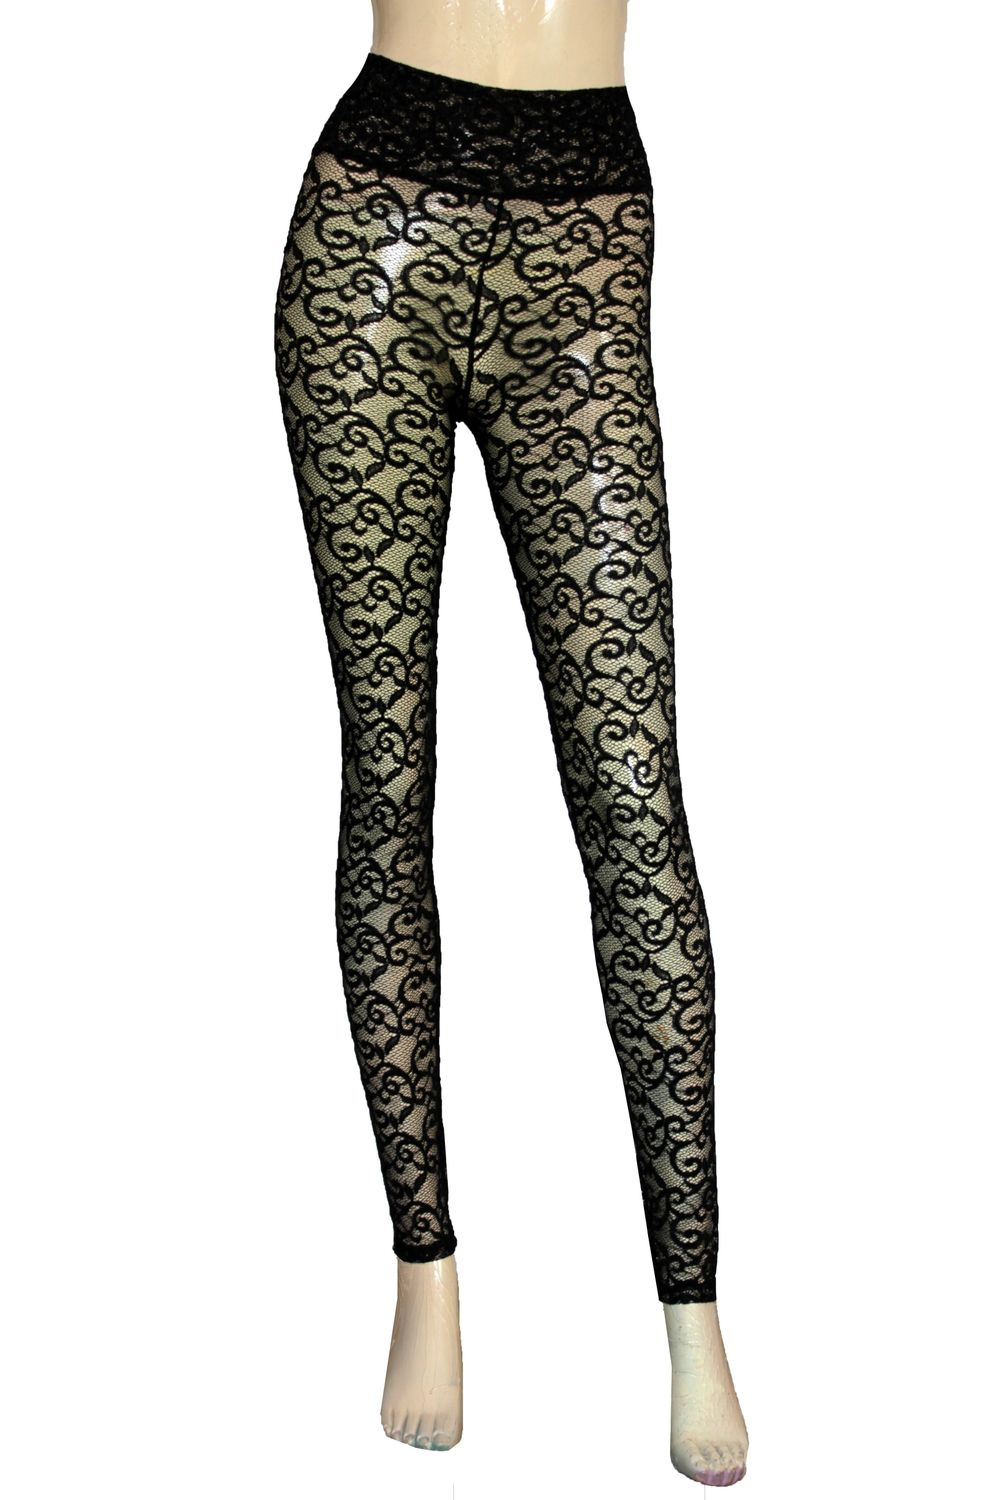 32b9d344aa8 Black lace leggings Sheer high waist tights Plus size lingerie Sexy ...